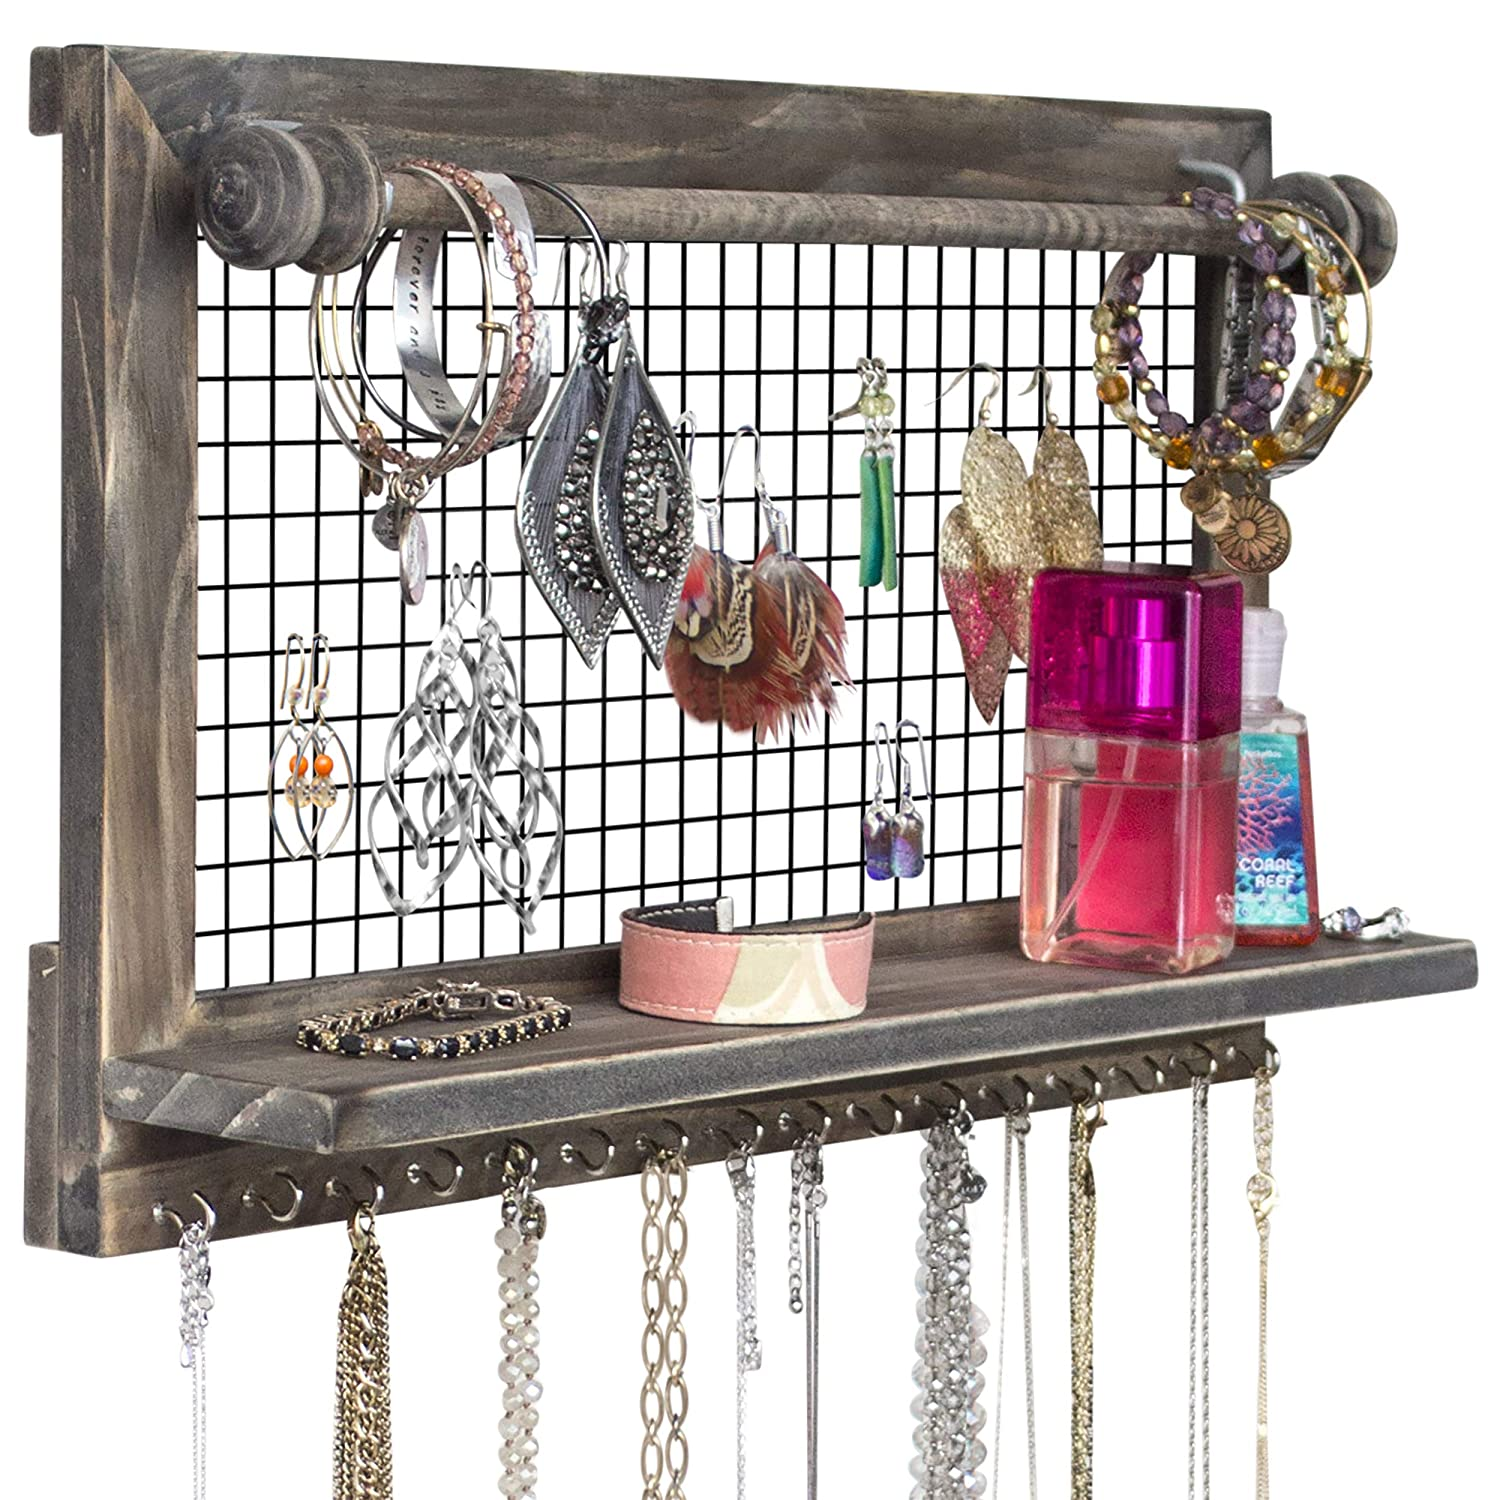 SoCal Buttercup Rustic Jewellery Organiser with Bracelet Rod Wall Mounted from Wooden Wall Mount Holder for Earrings, Necklaces, Bracelets, and Many Other Accessories …